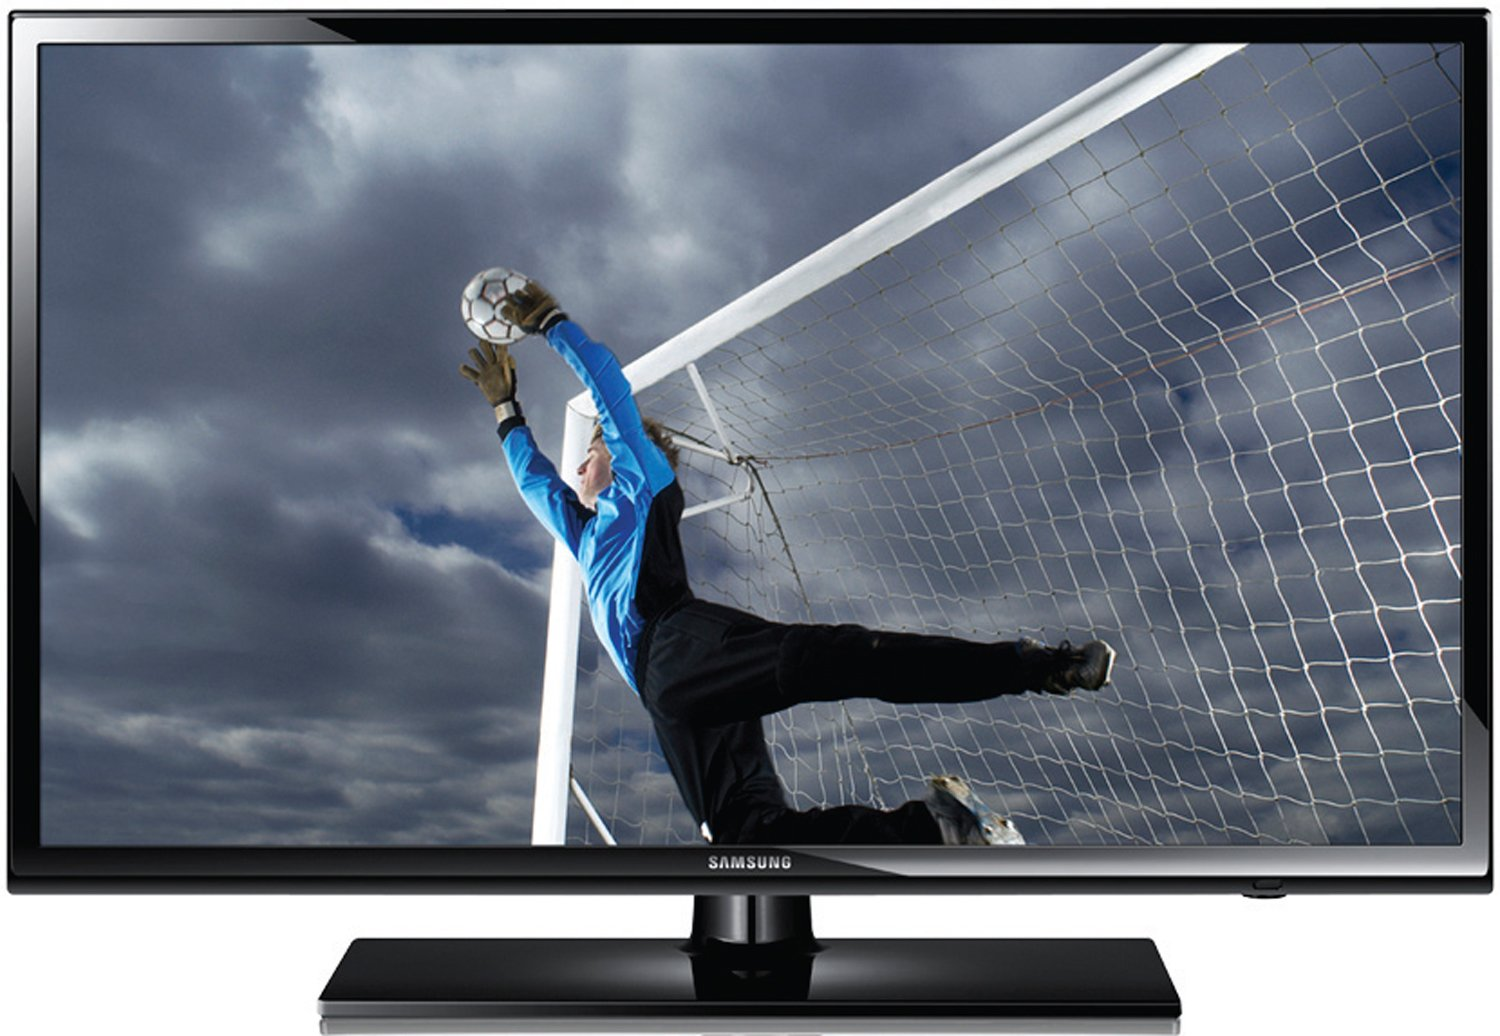 Samsung Led tv 32 Inches Series 4 32-inch 720p 60hz Led tv